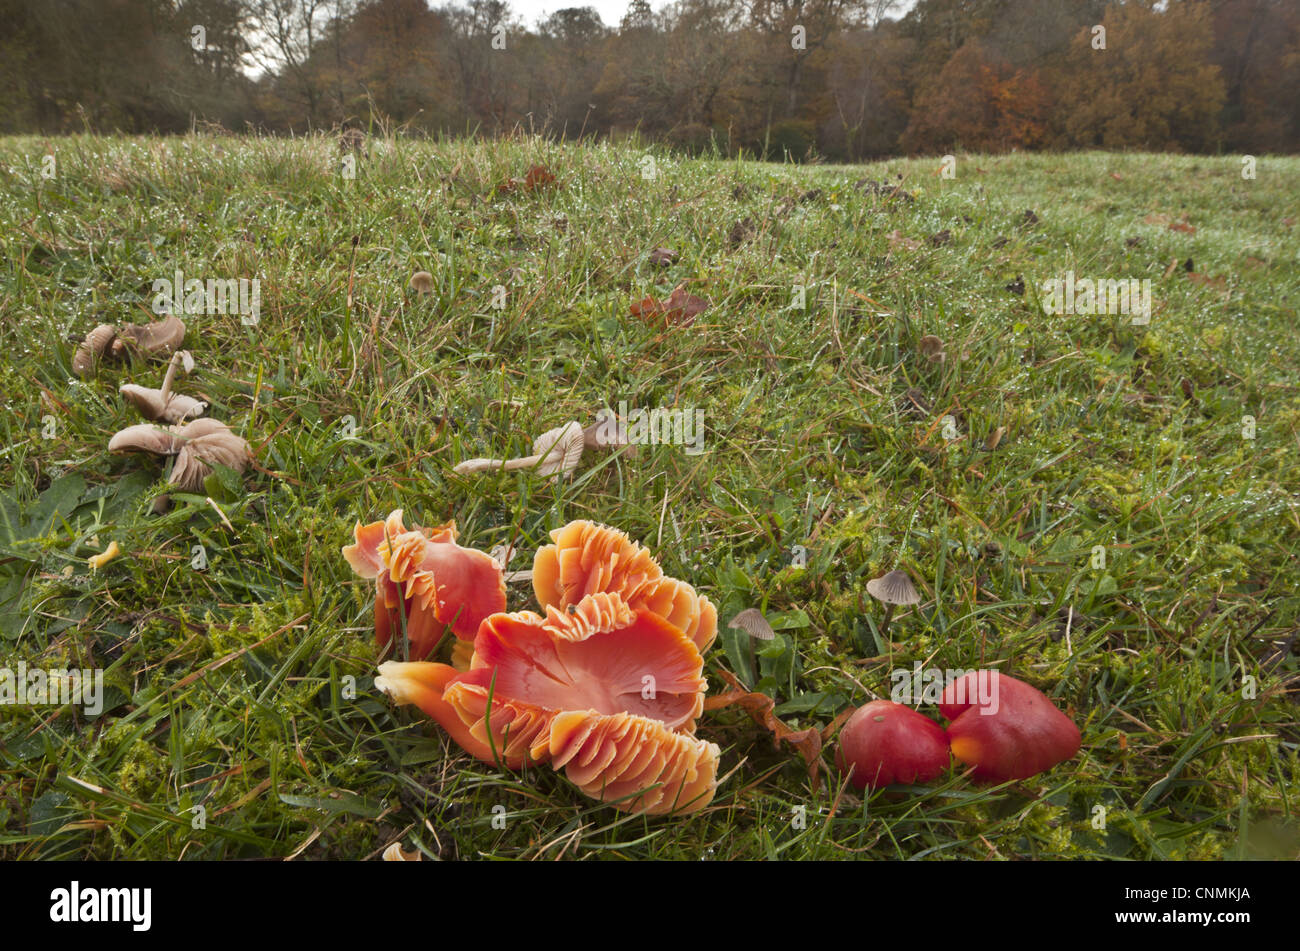 Scarlet Waxcap Hygrocybe coccinea fruiting bodies growing old grazed grassland habitat Emery Down New Forest Hampshire - Stock Image